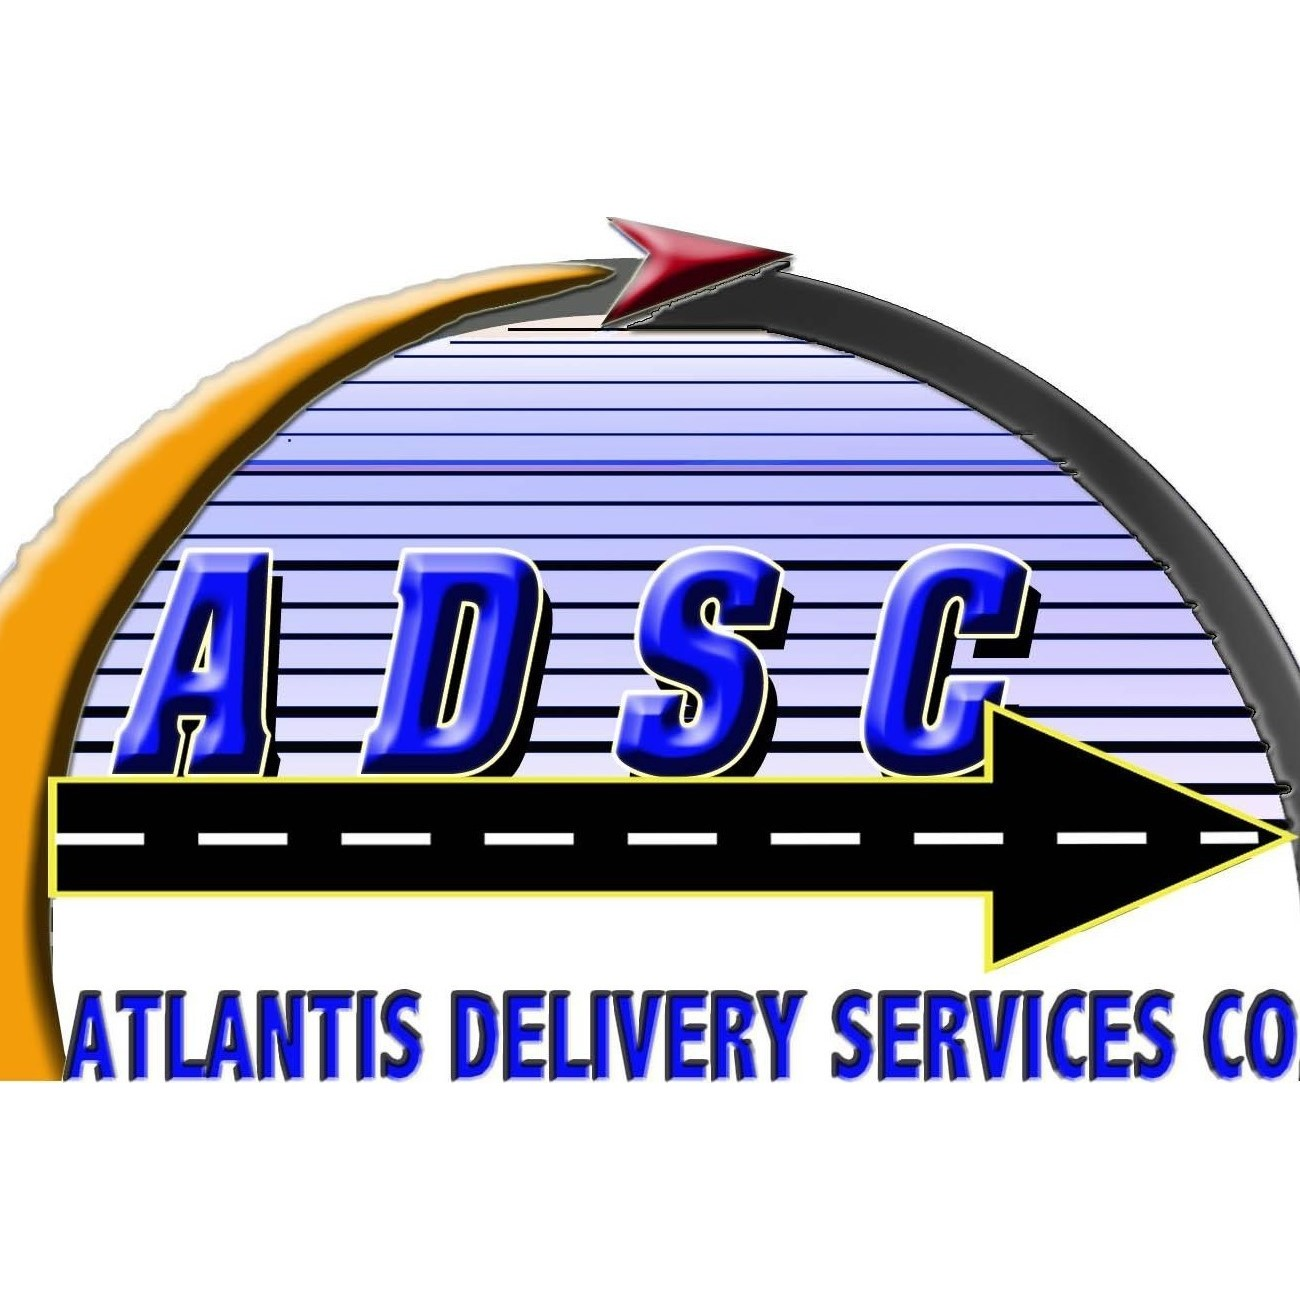 Atlantis Delivery Services